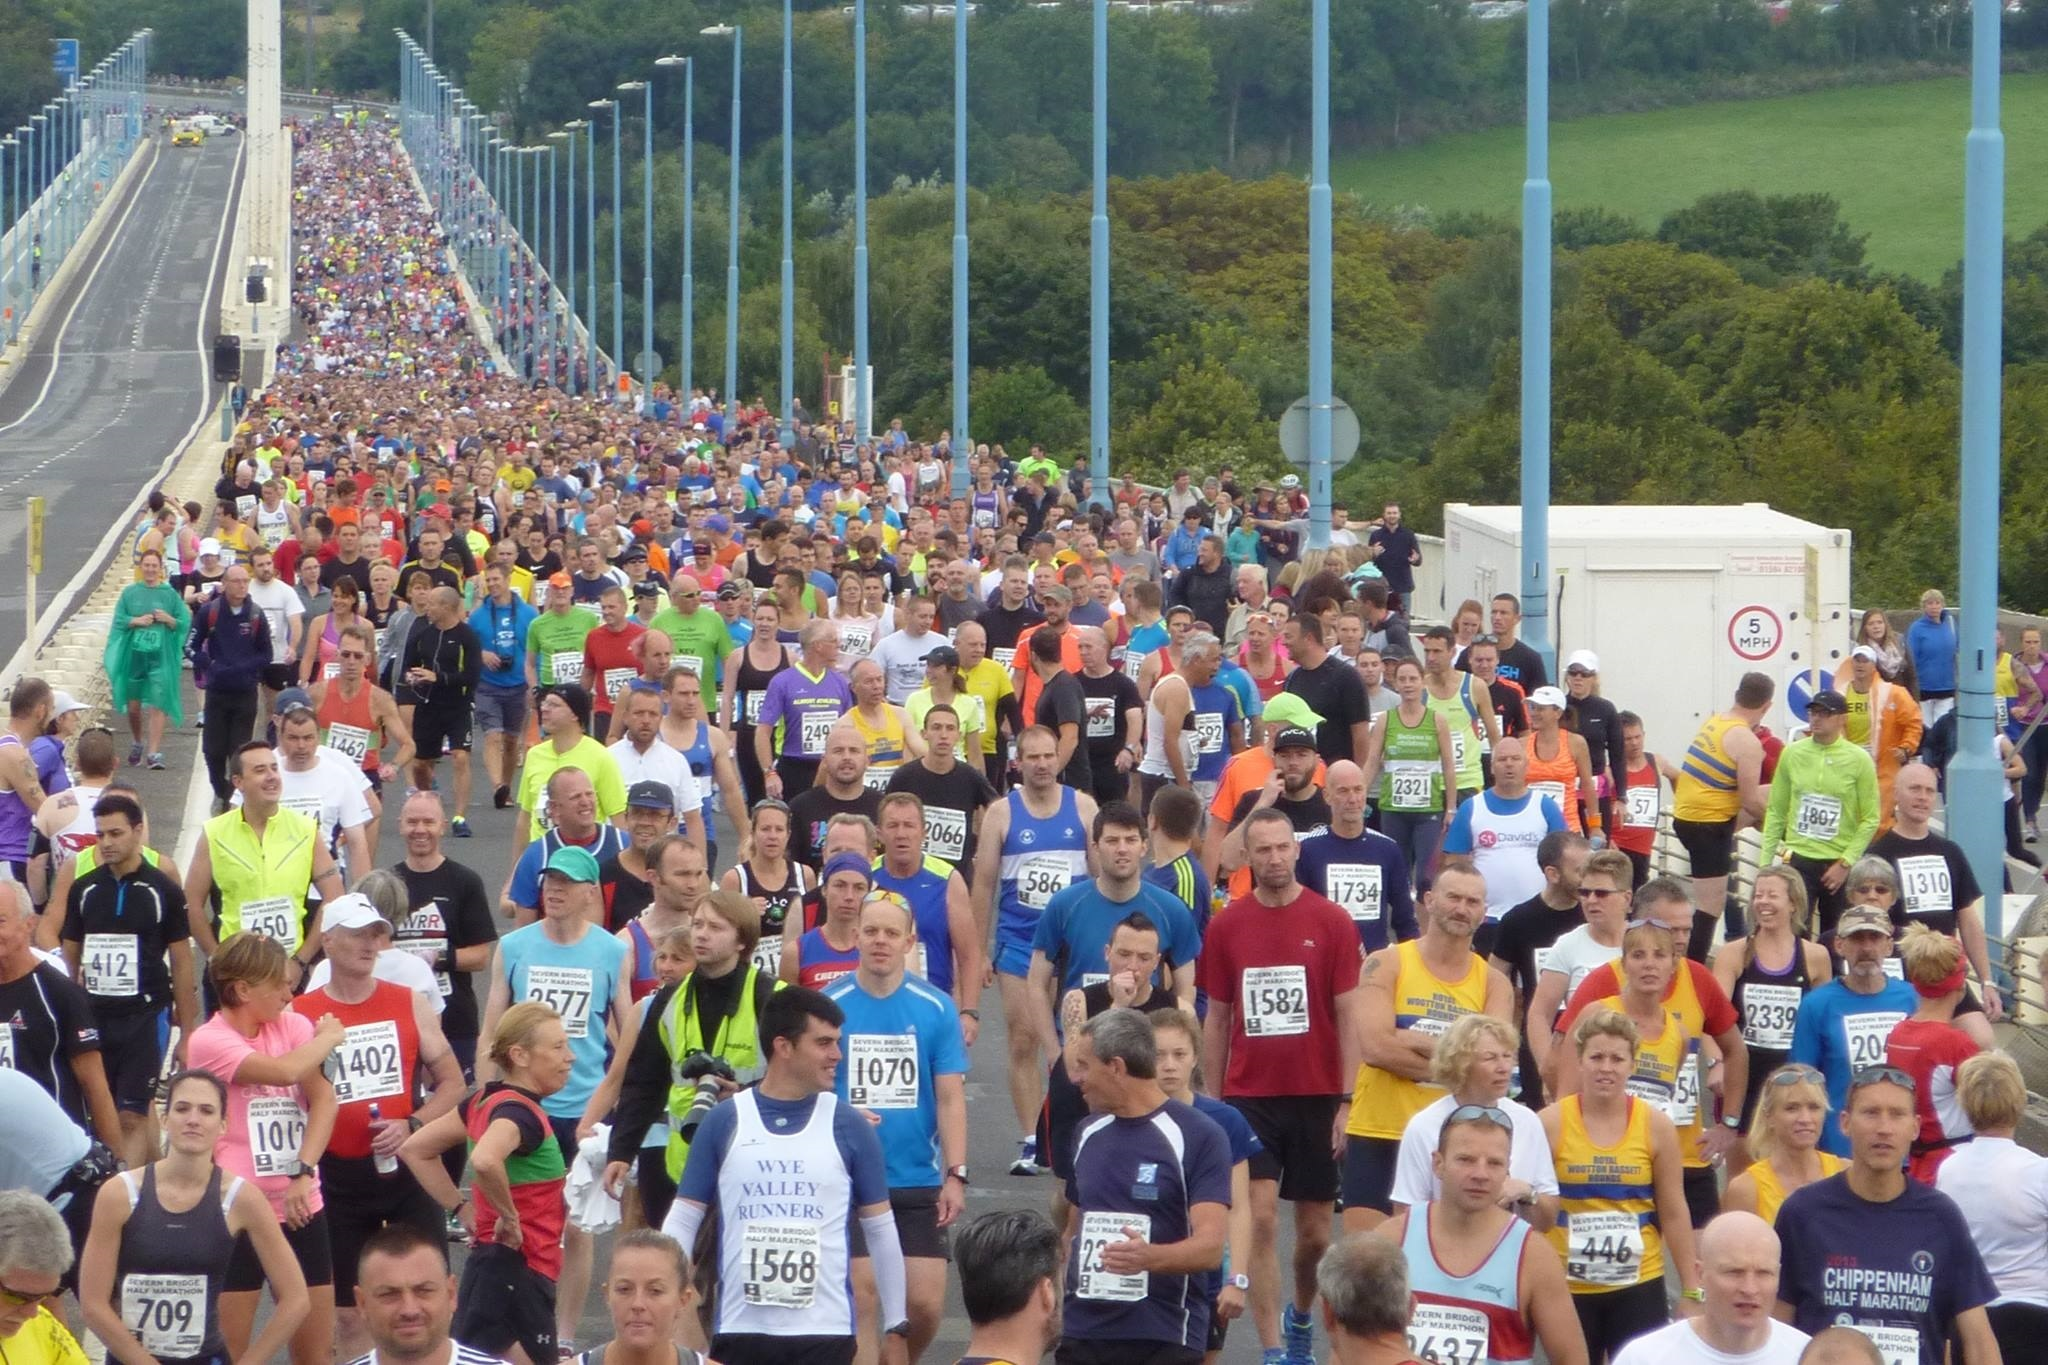 Runners line up for the Severn Bridge Half Marathon